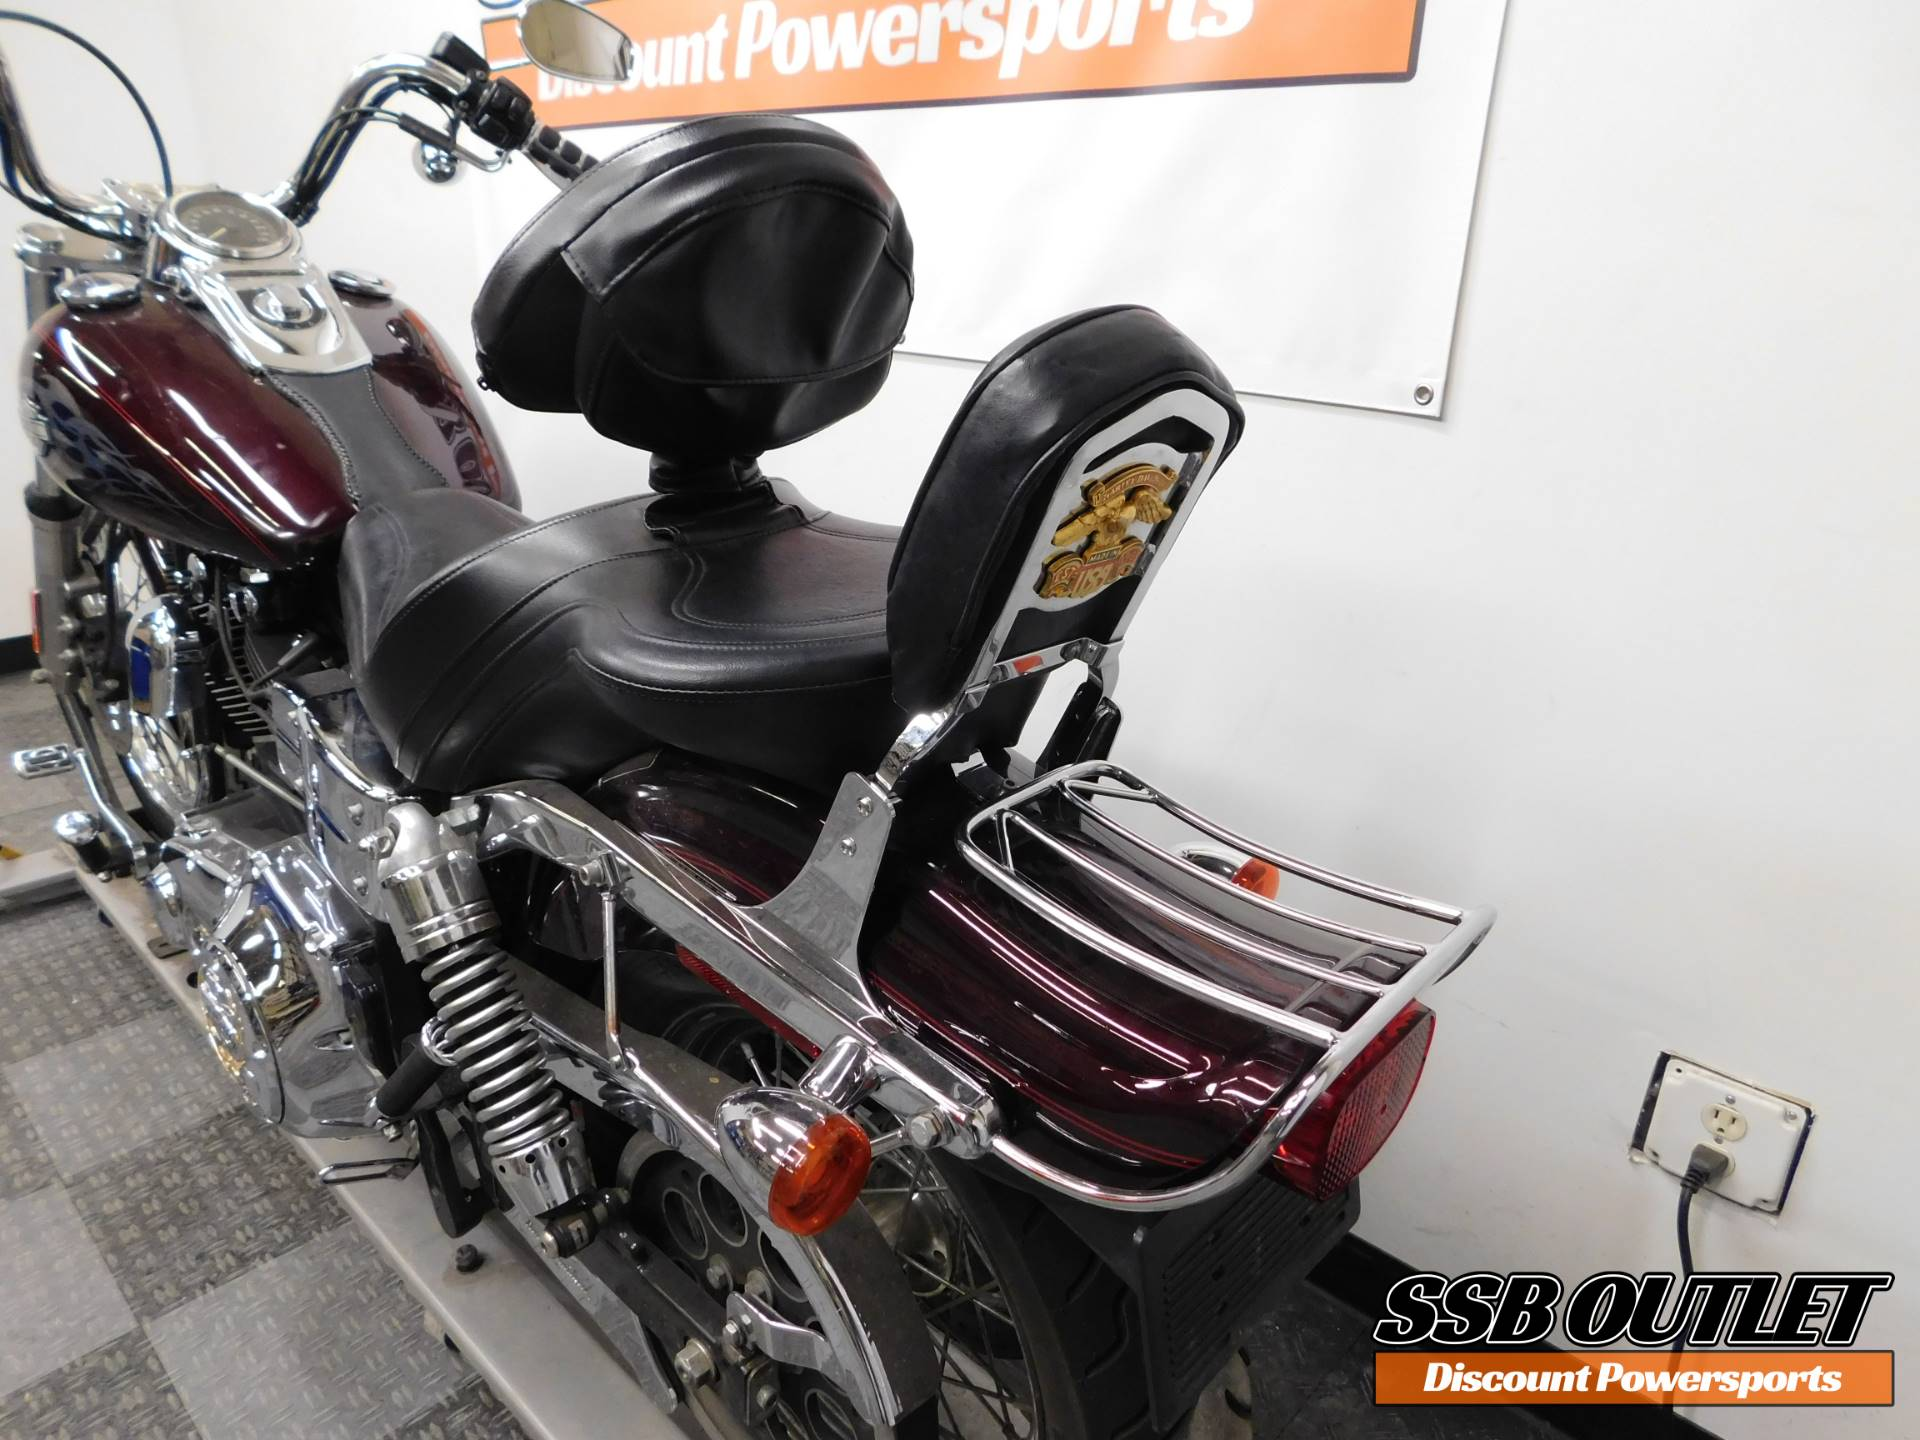 New Dyna Motorcycles For Sale Minnesota >> Used 2005 Harley-Davidson FXDWG/FXDWGI Dyna Wide Glide® Motorcycles in Eden Prairie, MN | Stock ...